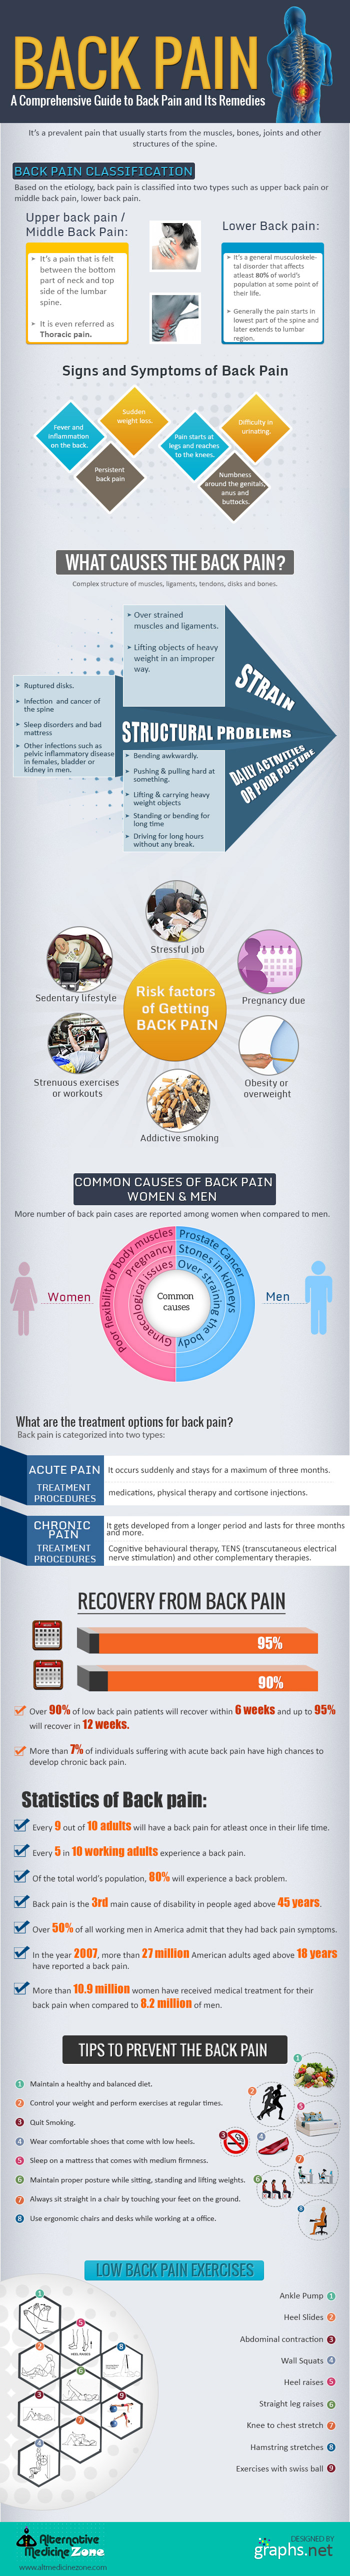 Back Pain Guide And its Remedies